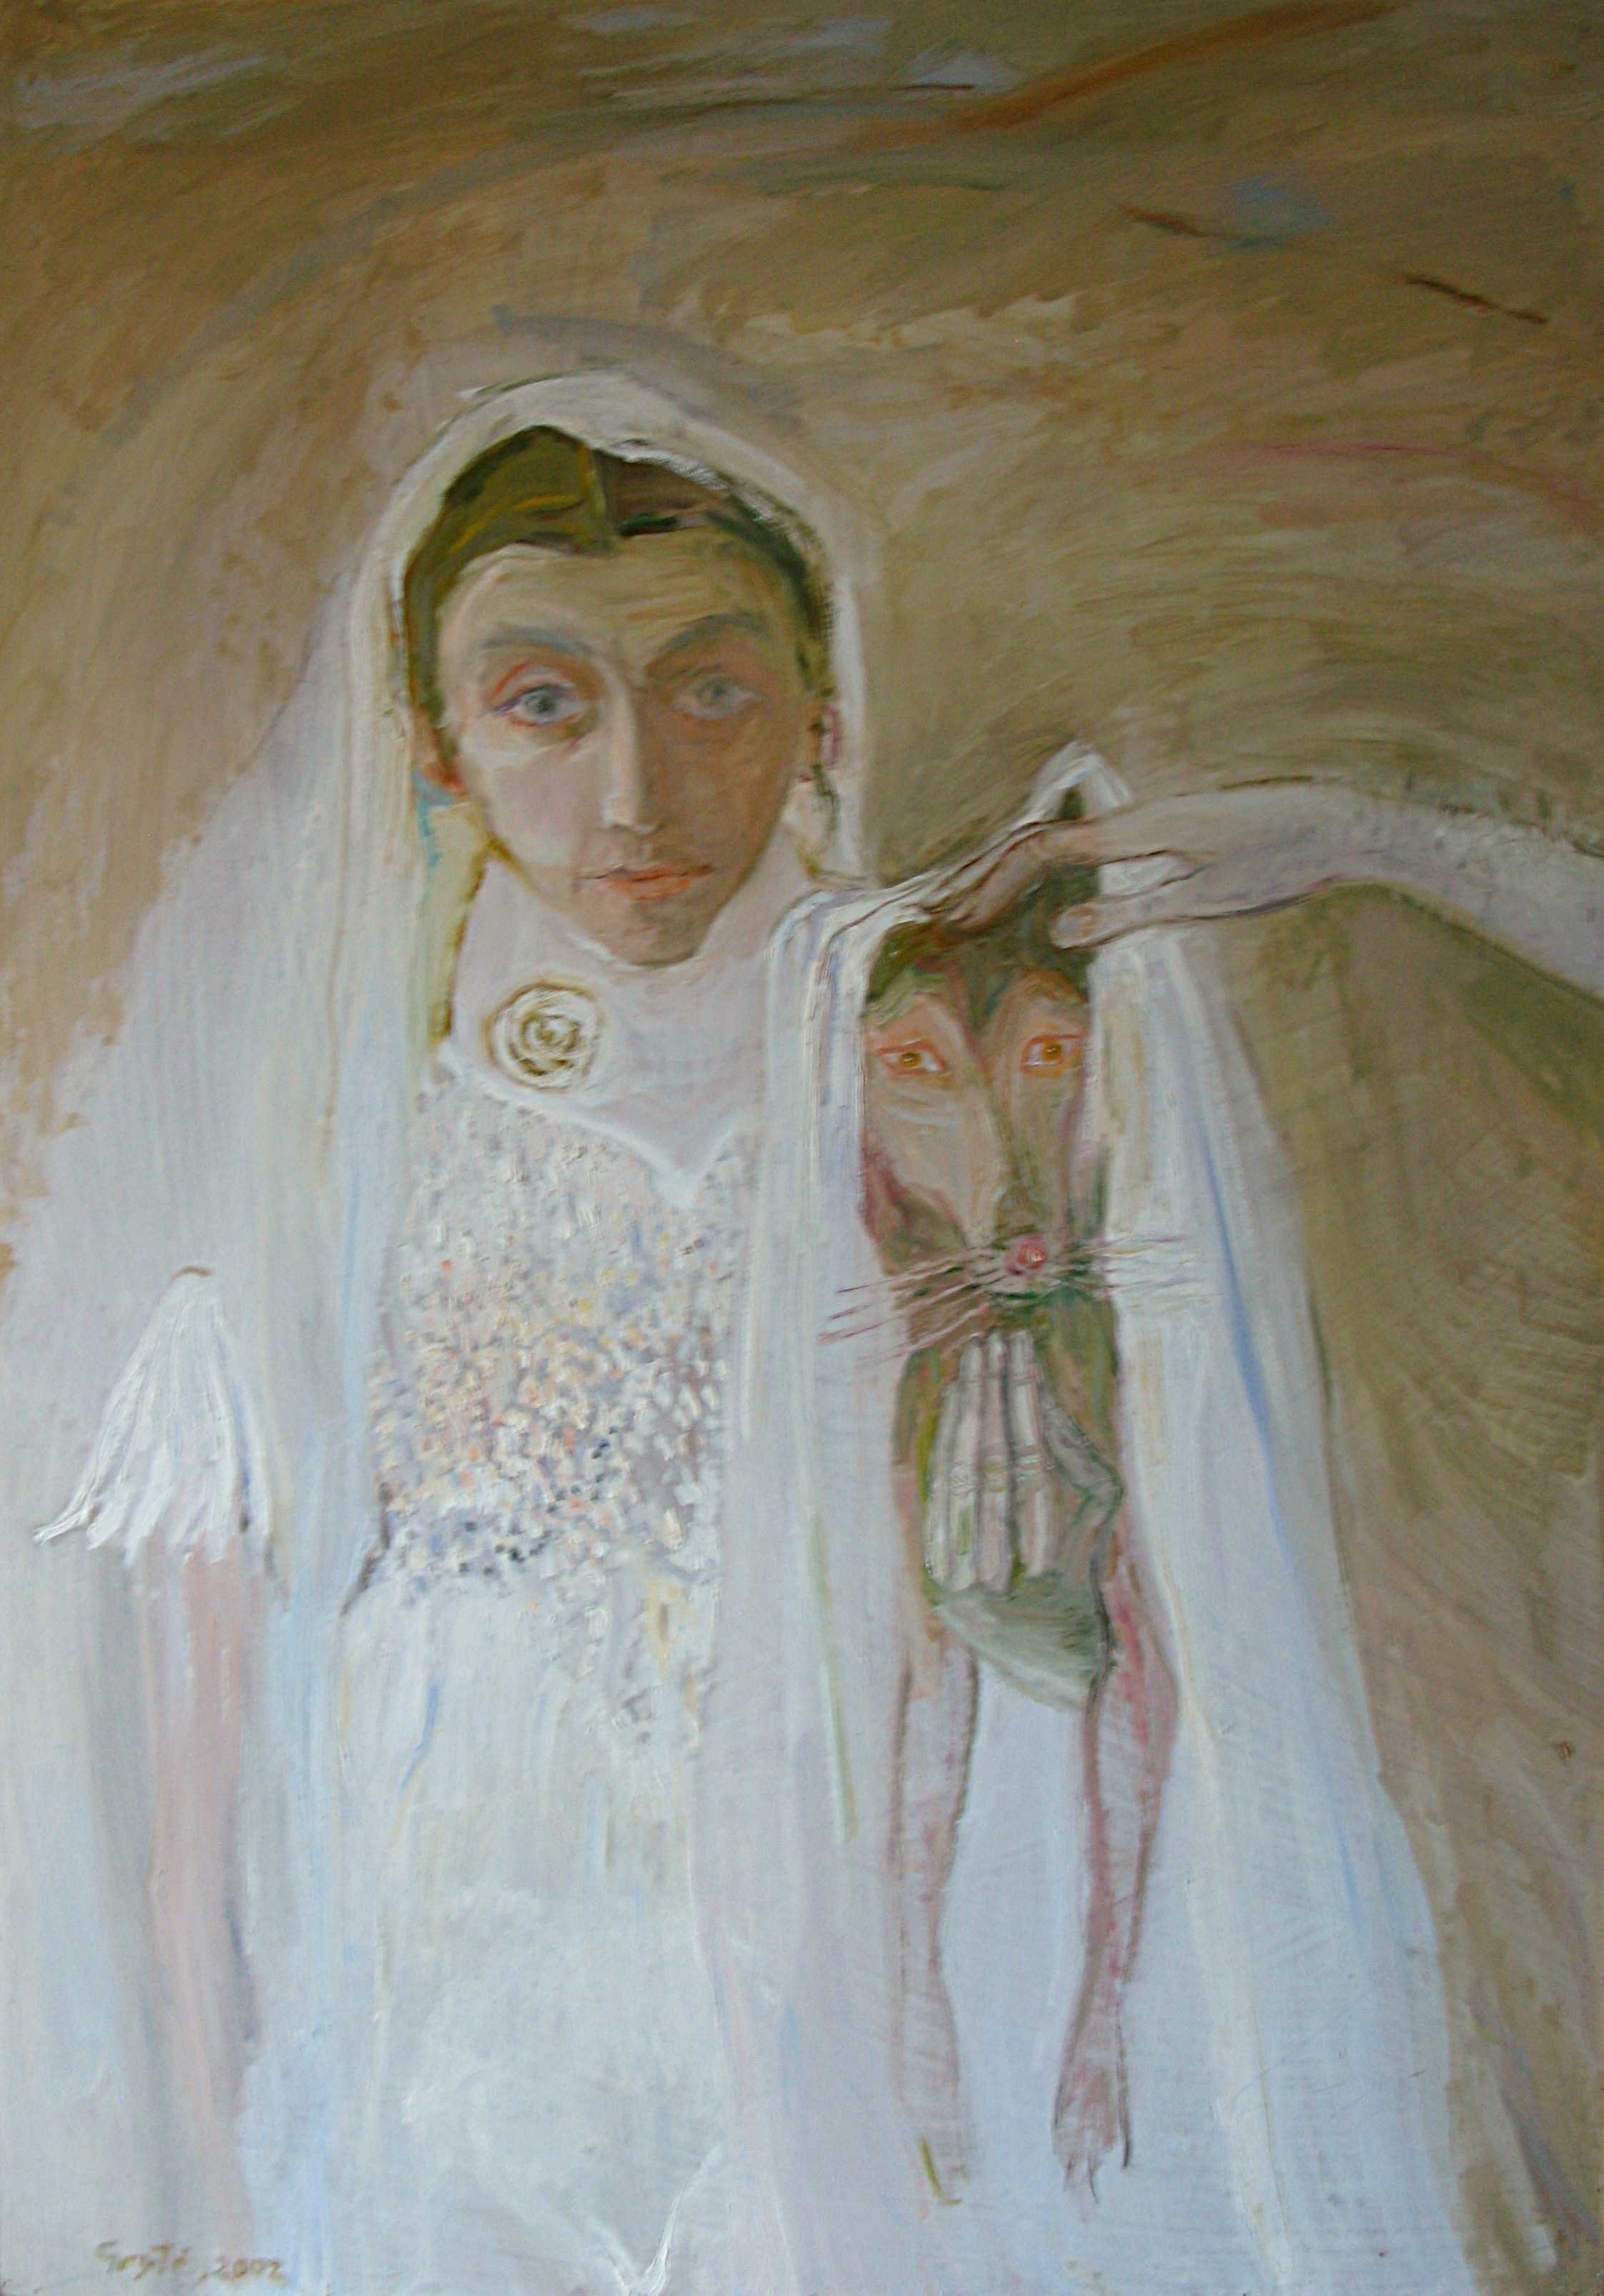 The bride with dog